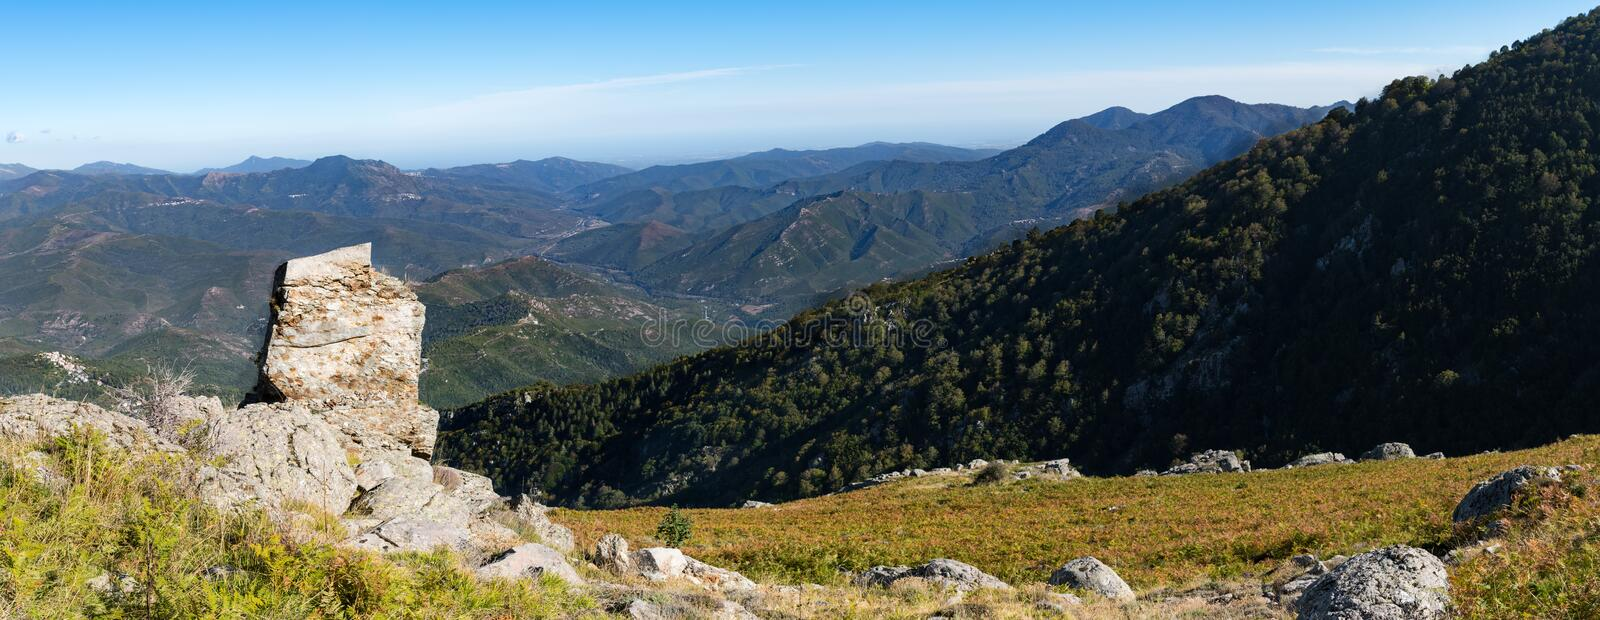 Panoramic view of the Regional Natural Park of Corsica, taken in central Corsica on the slopes of Monte Cardo stock photo